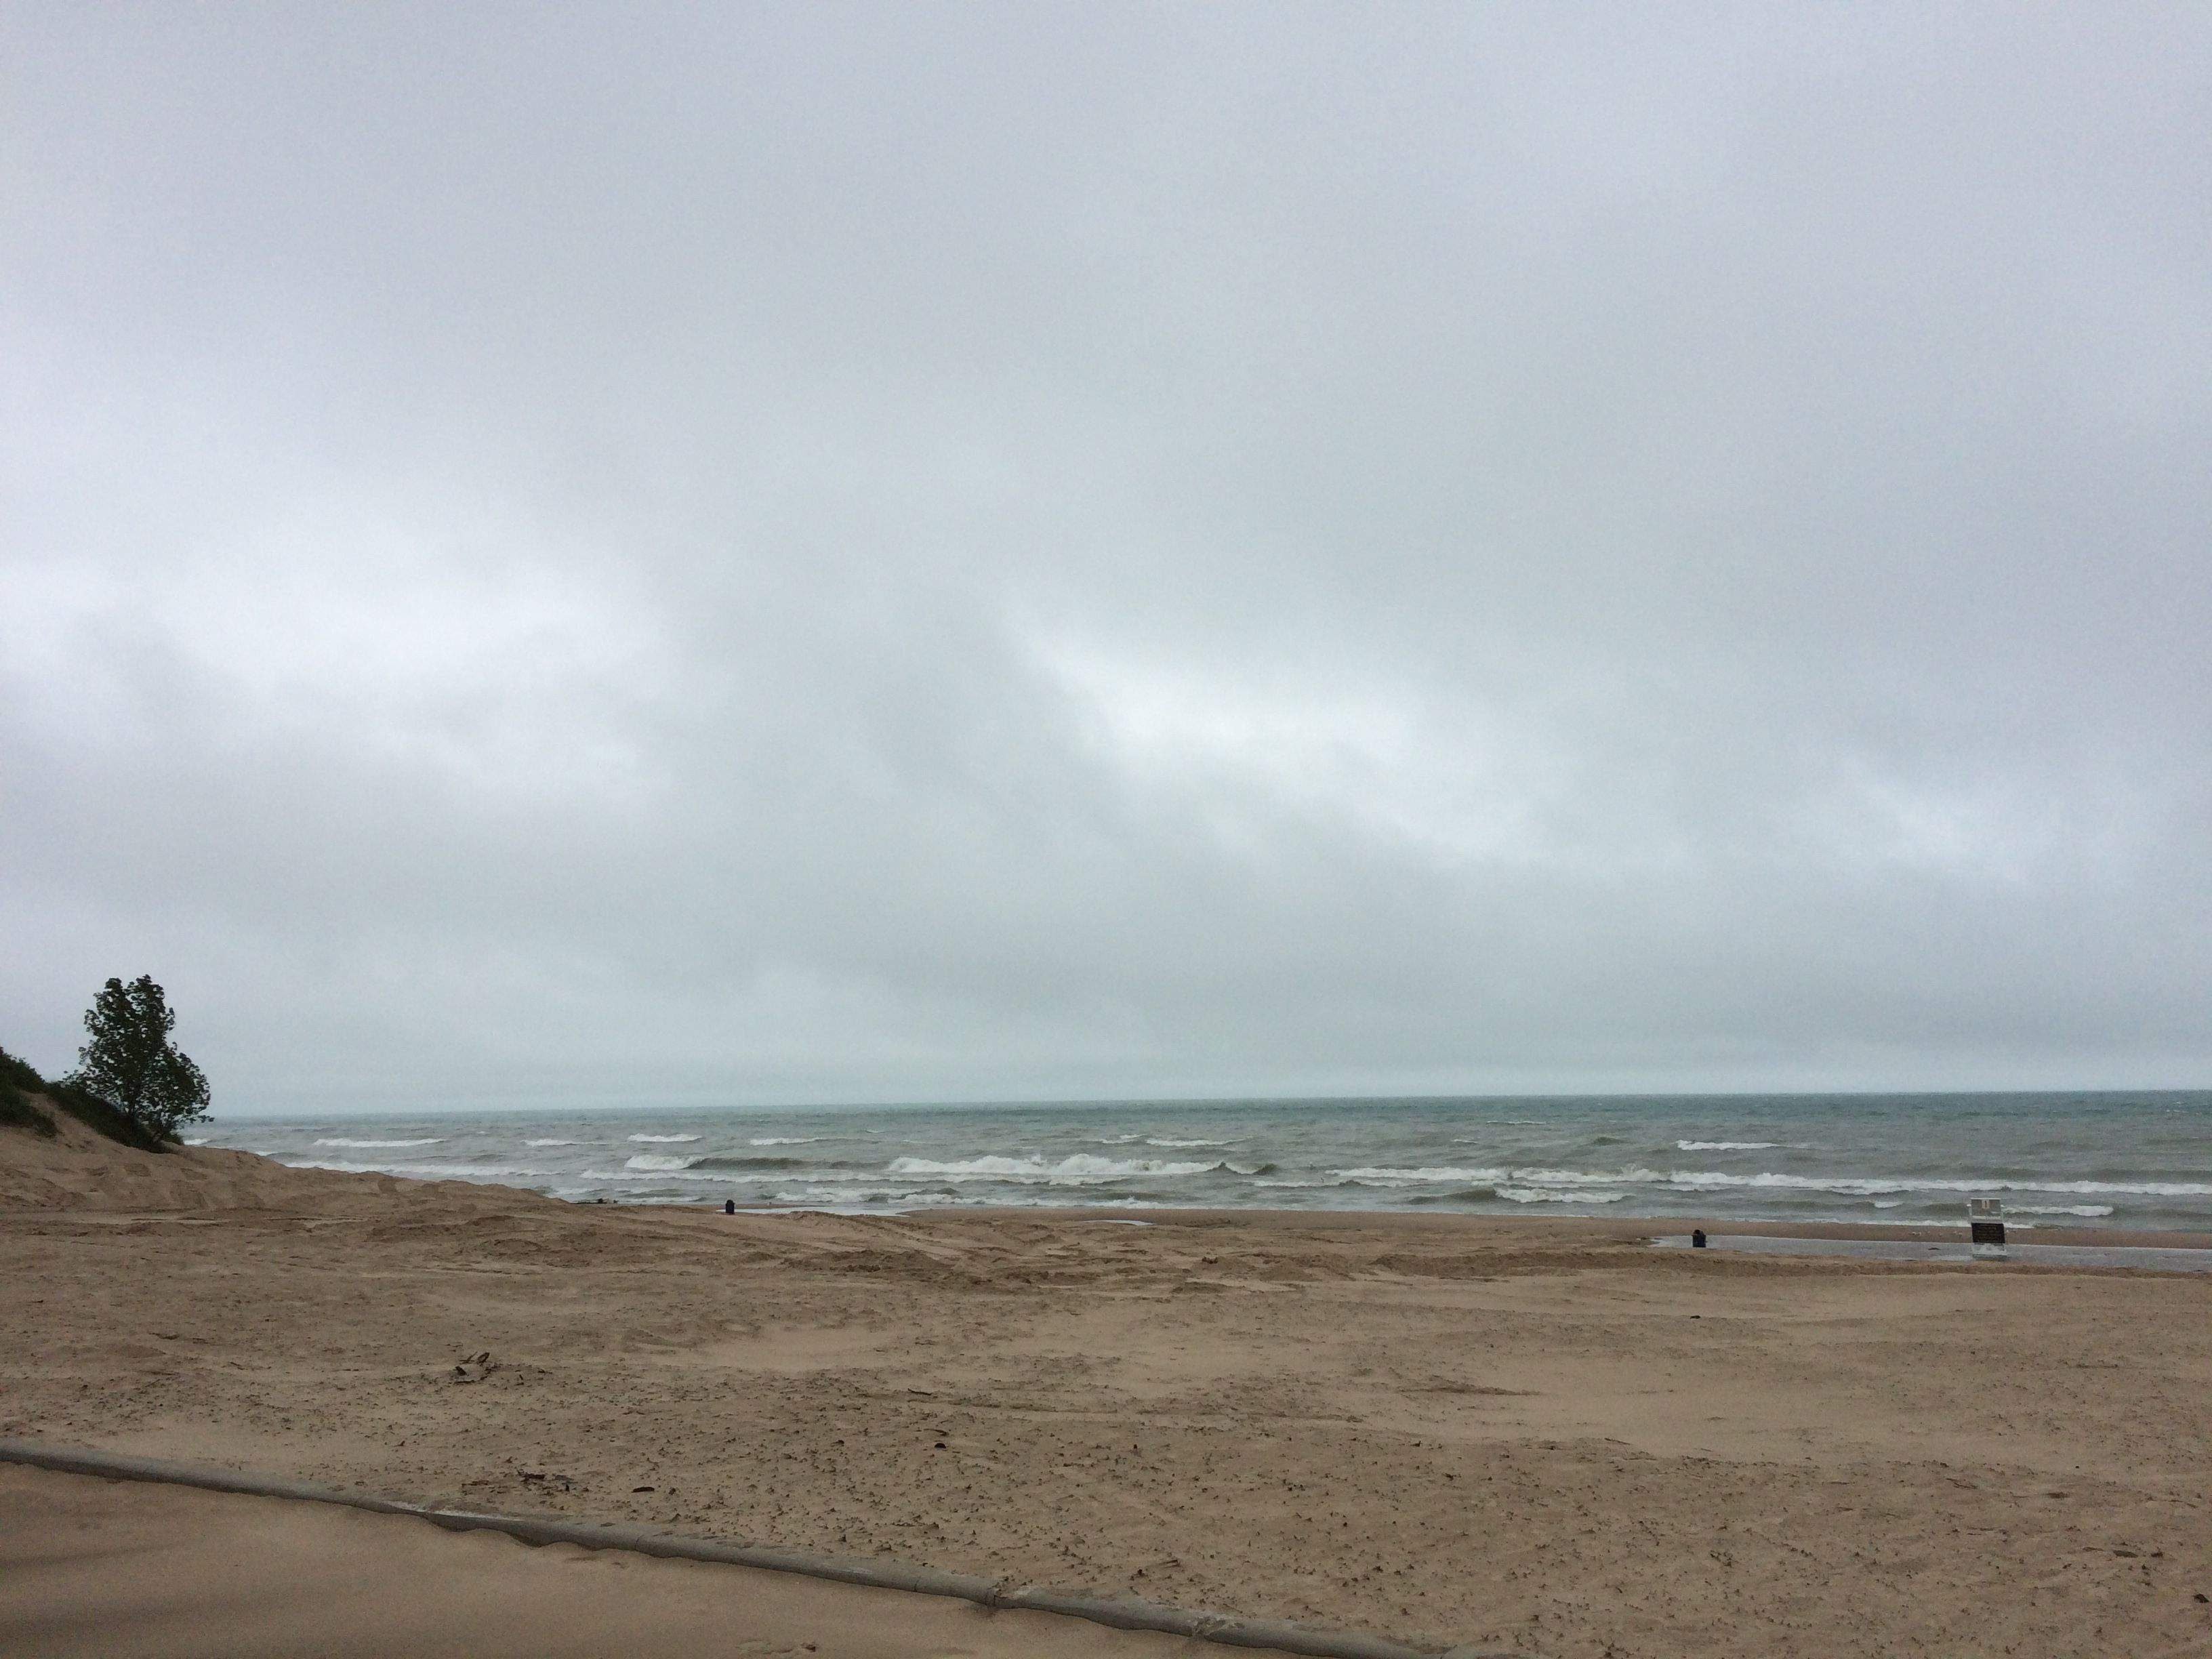 A view of the angry looking Lake Michigan from Indiana Dunes State Park.